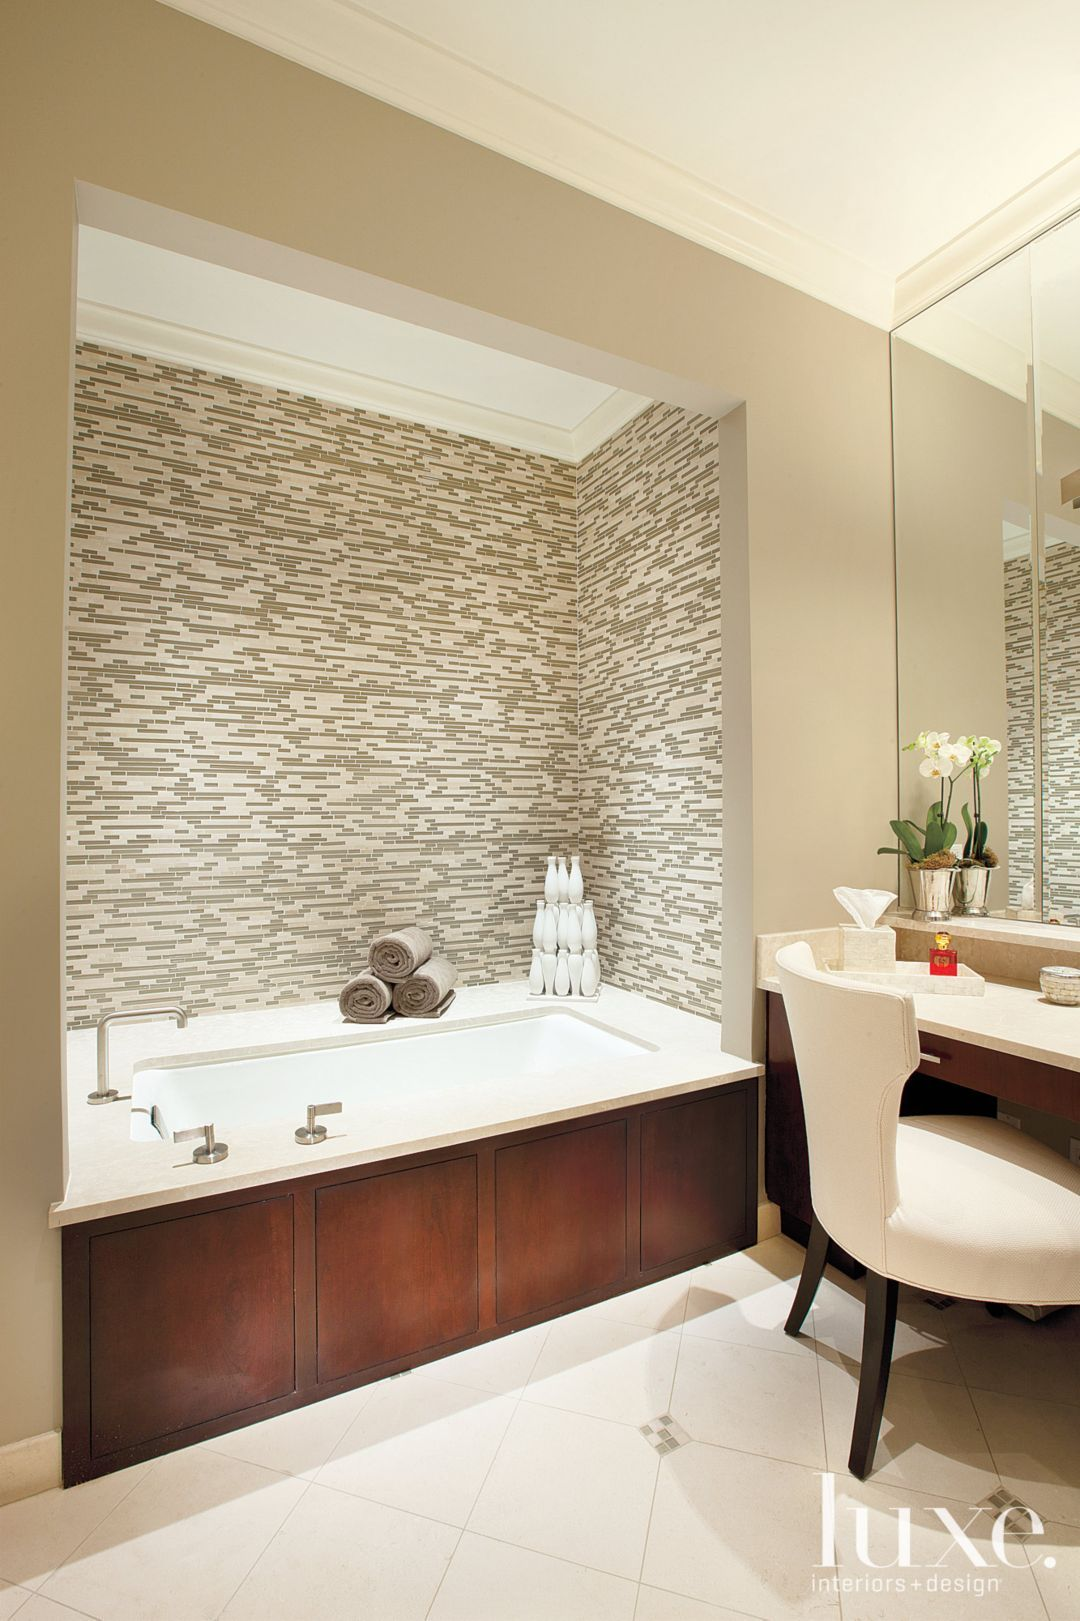 15 Beautiful Bathroom Tile Designs | LuxeDaily - Design Insight from ...